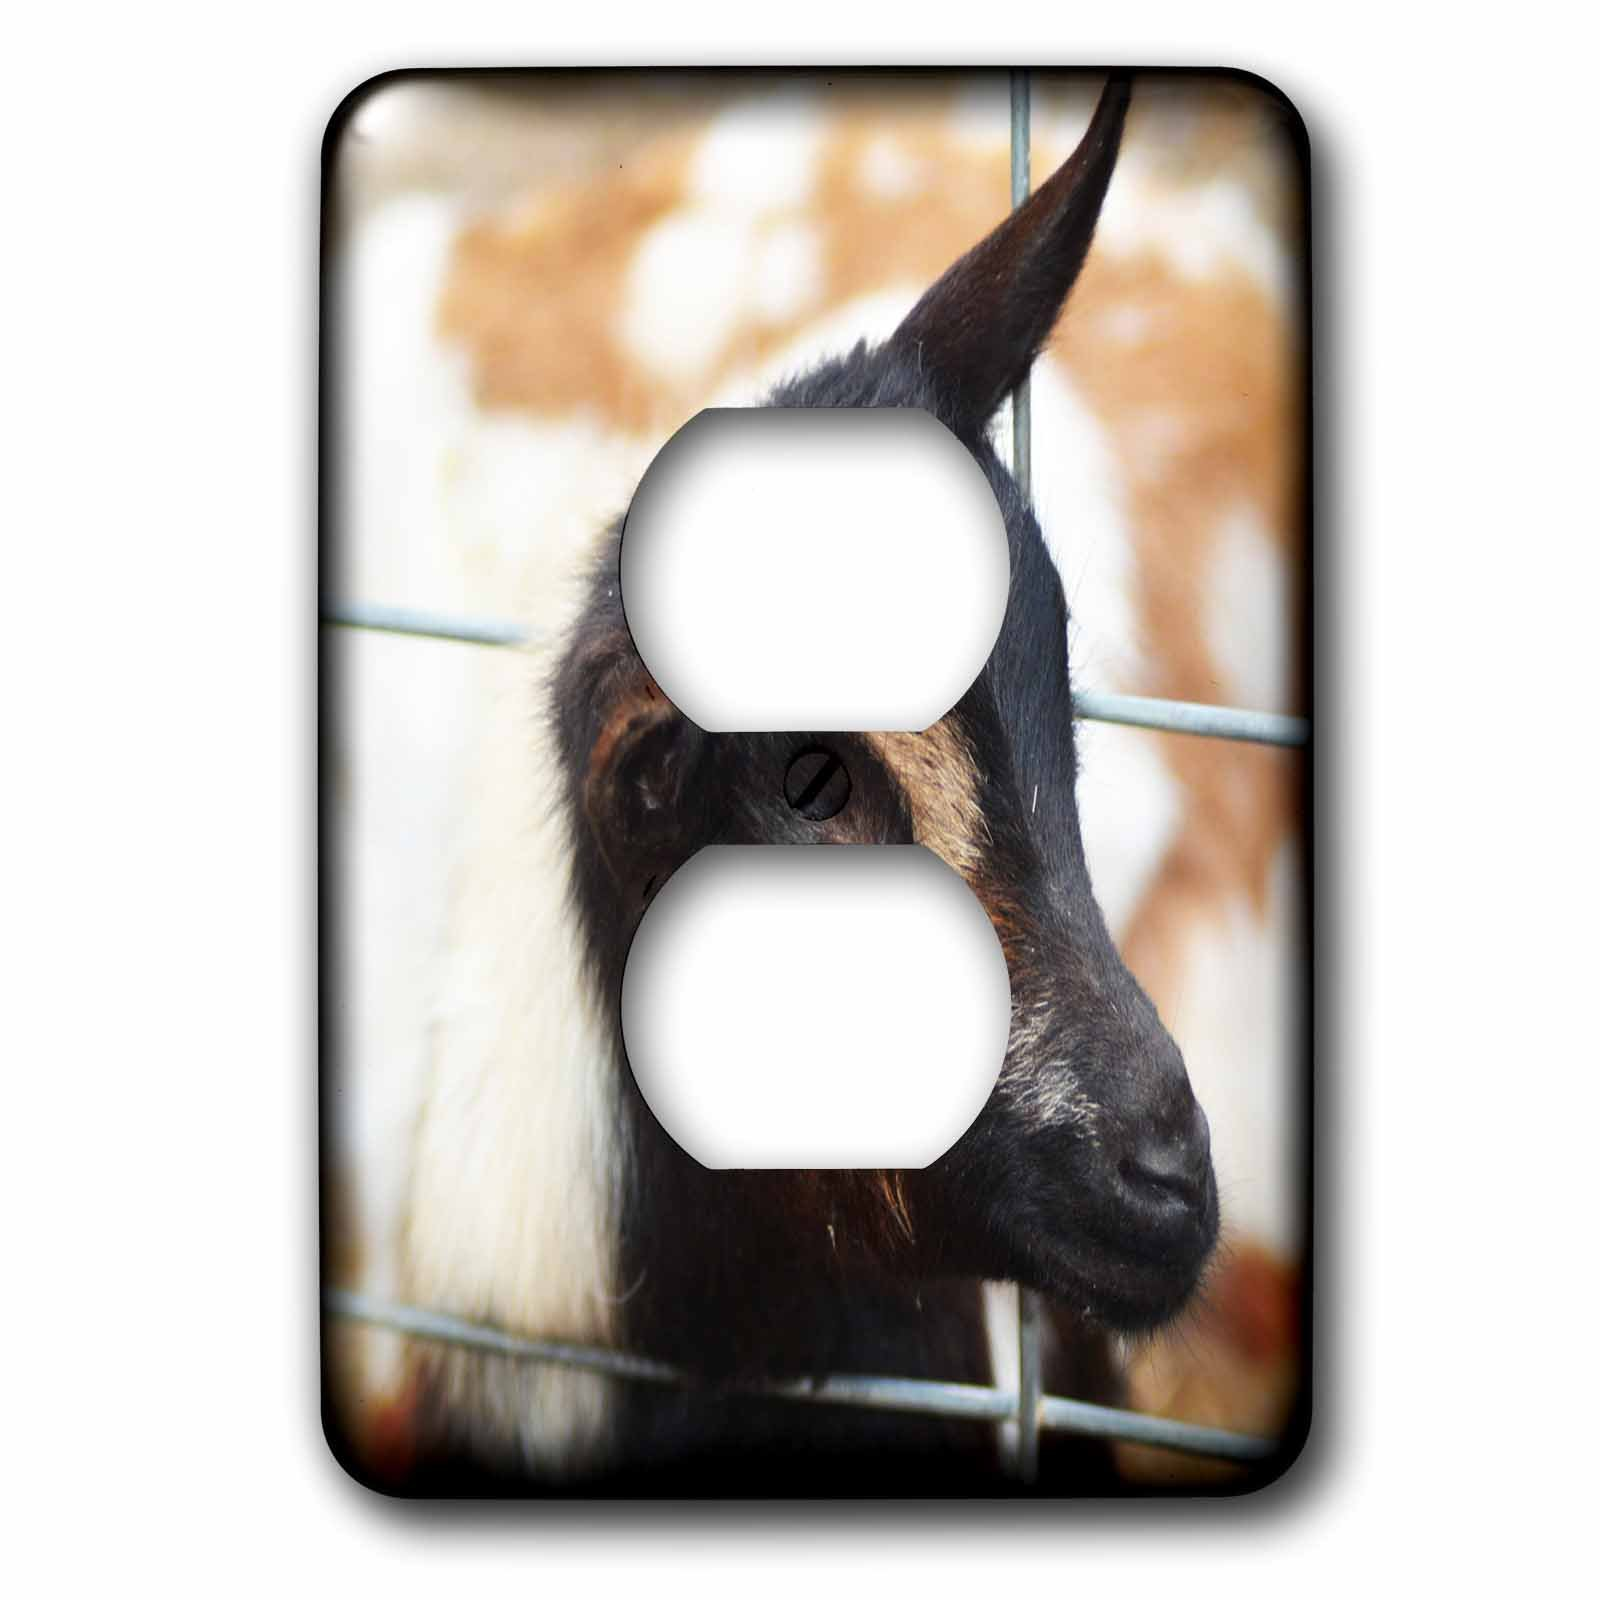 3dRose WhiteOaks Photography and Artwork - Goats - Spooky Eye Goat is a close up of a goat showing its eye - Light Switch Covers - 2 plug outlet cover (lsp_265345_6)